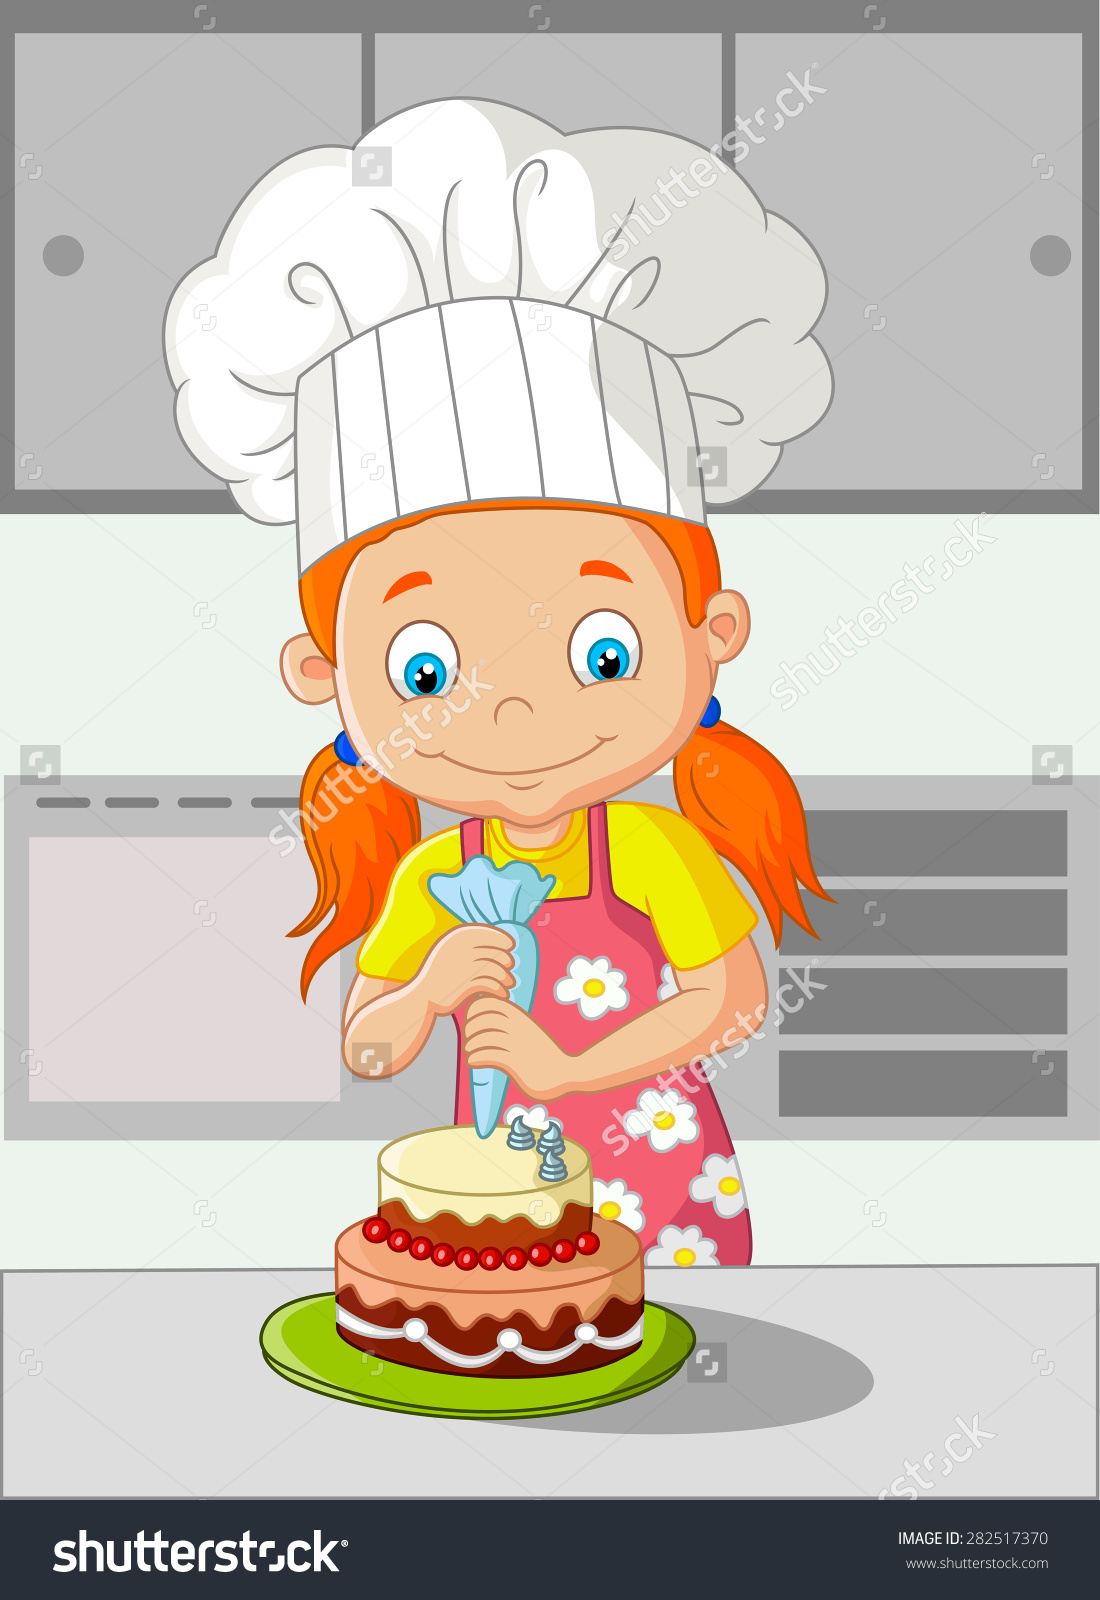 Making Cake Clipart.